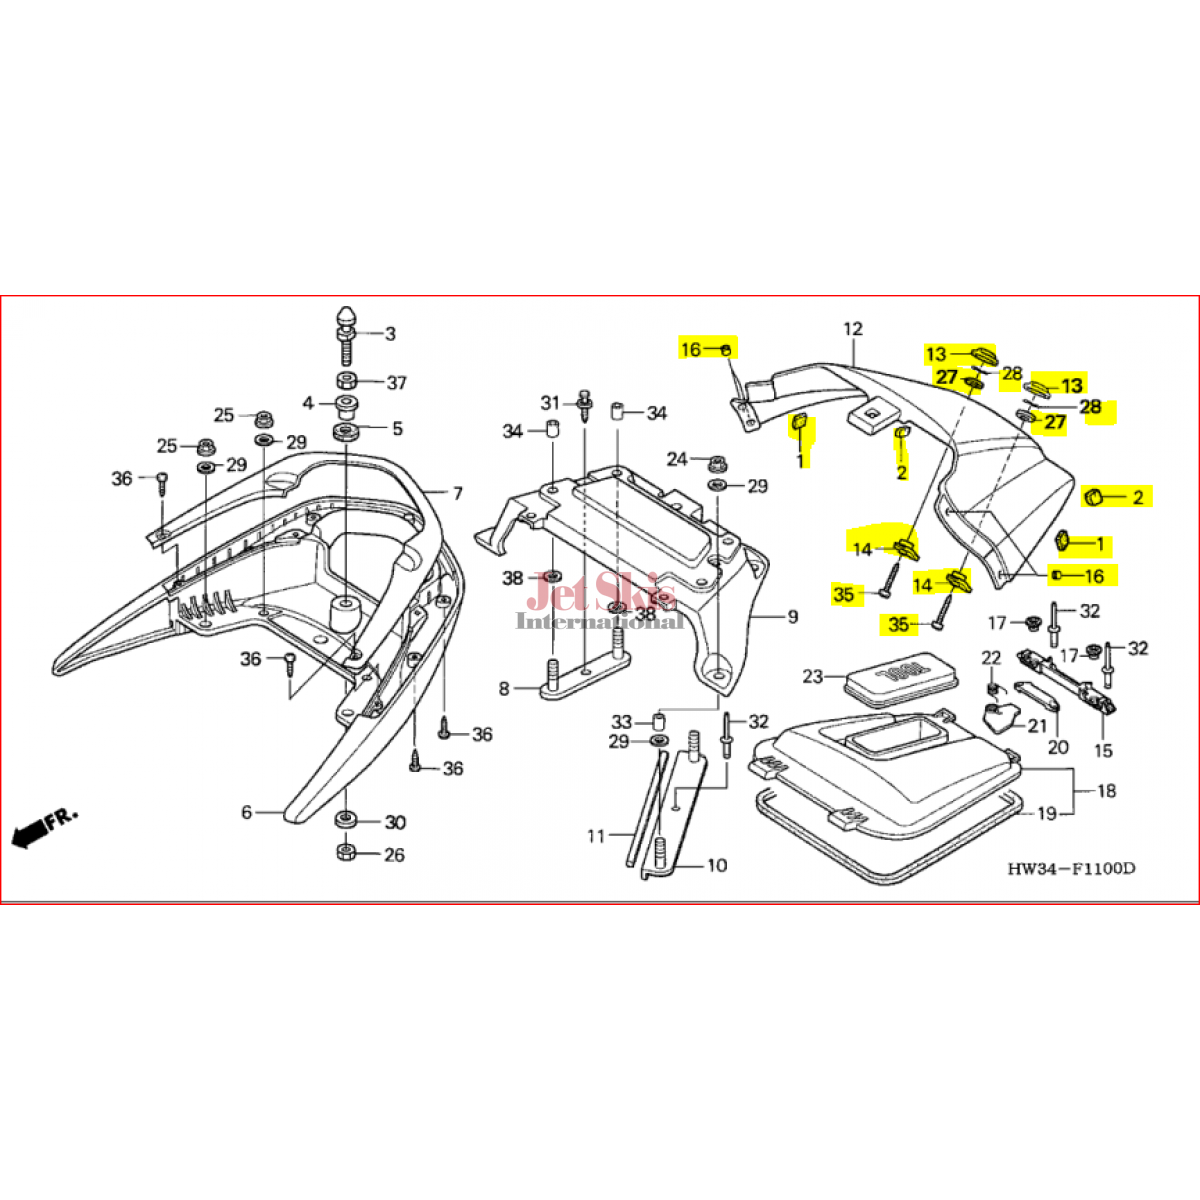 Assembly overview sump oil pump as well 2005 E60 M54 Pulley Question 140210 also 2001 Toyota Solara Knock Sensor Location additionally Chevrolet Colorado 5 Cylinder Engine Diagram additionally Washer Sealing 91356 Hw1 671. on 2 cylinder supercharger